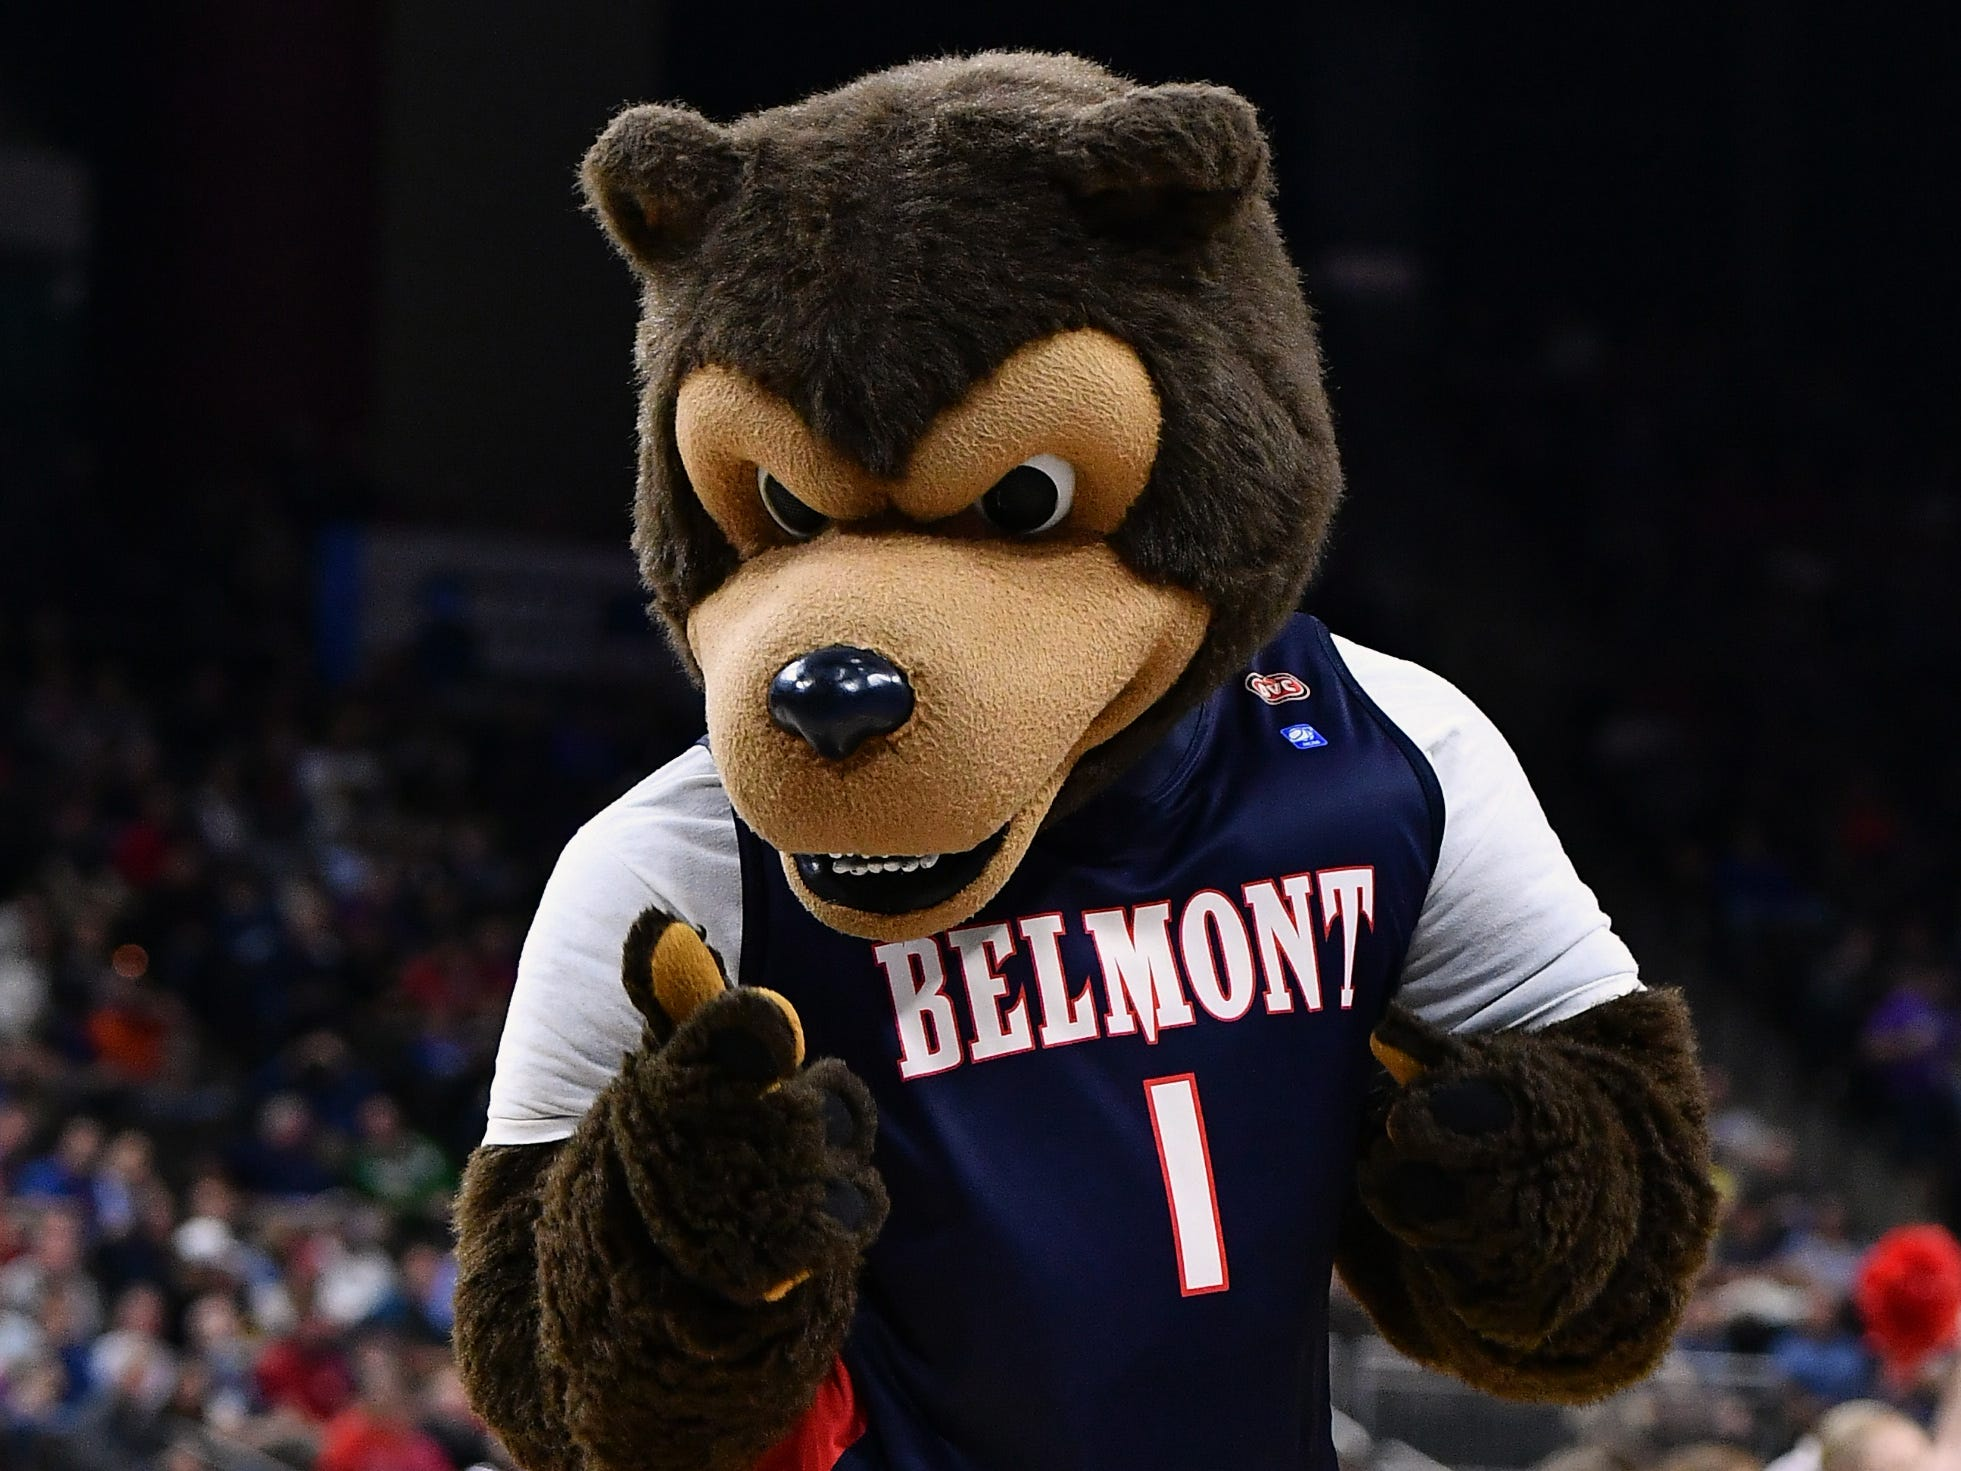 Belmont mascot Bruiser the Bruin looks like something out of a nightmare.